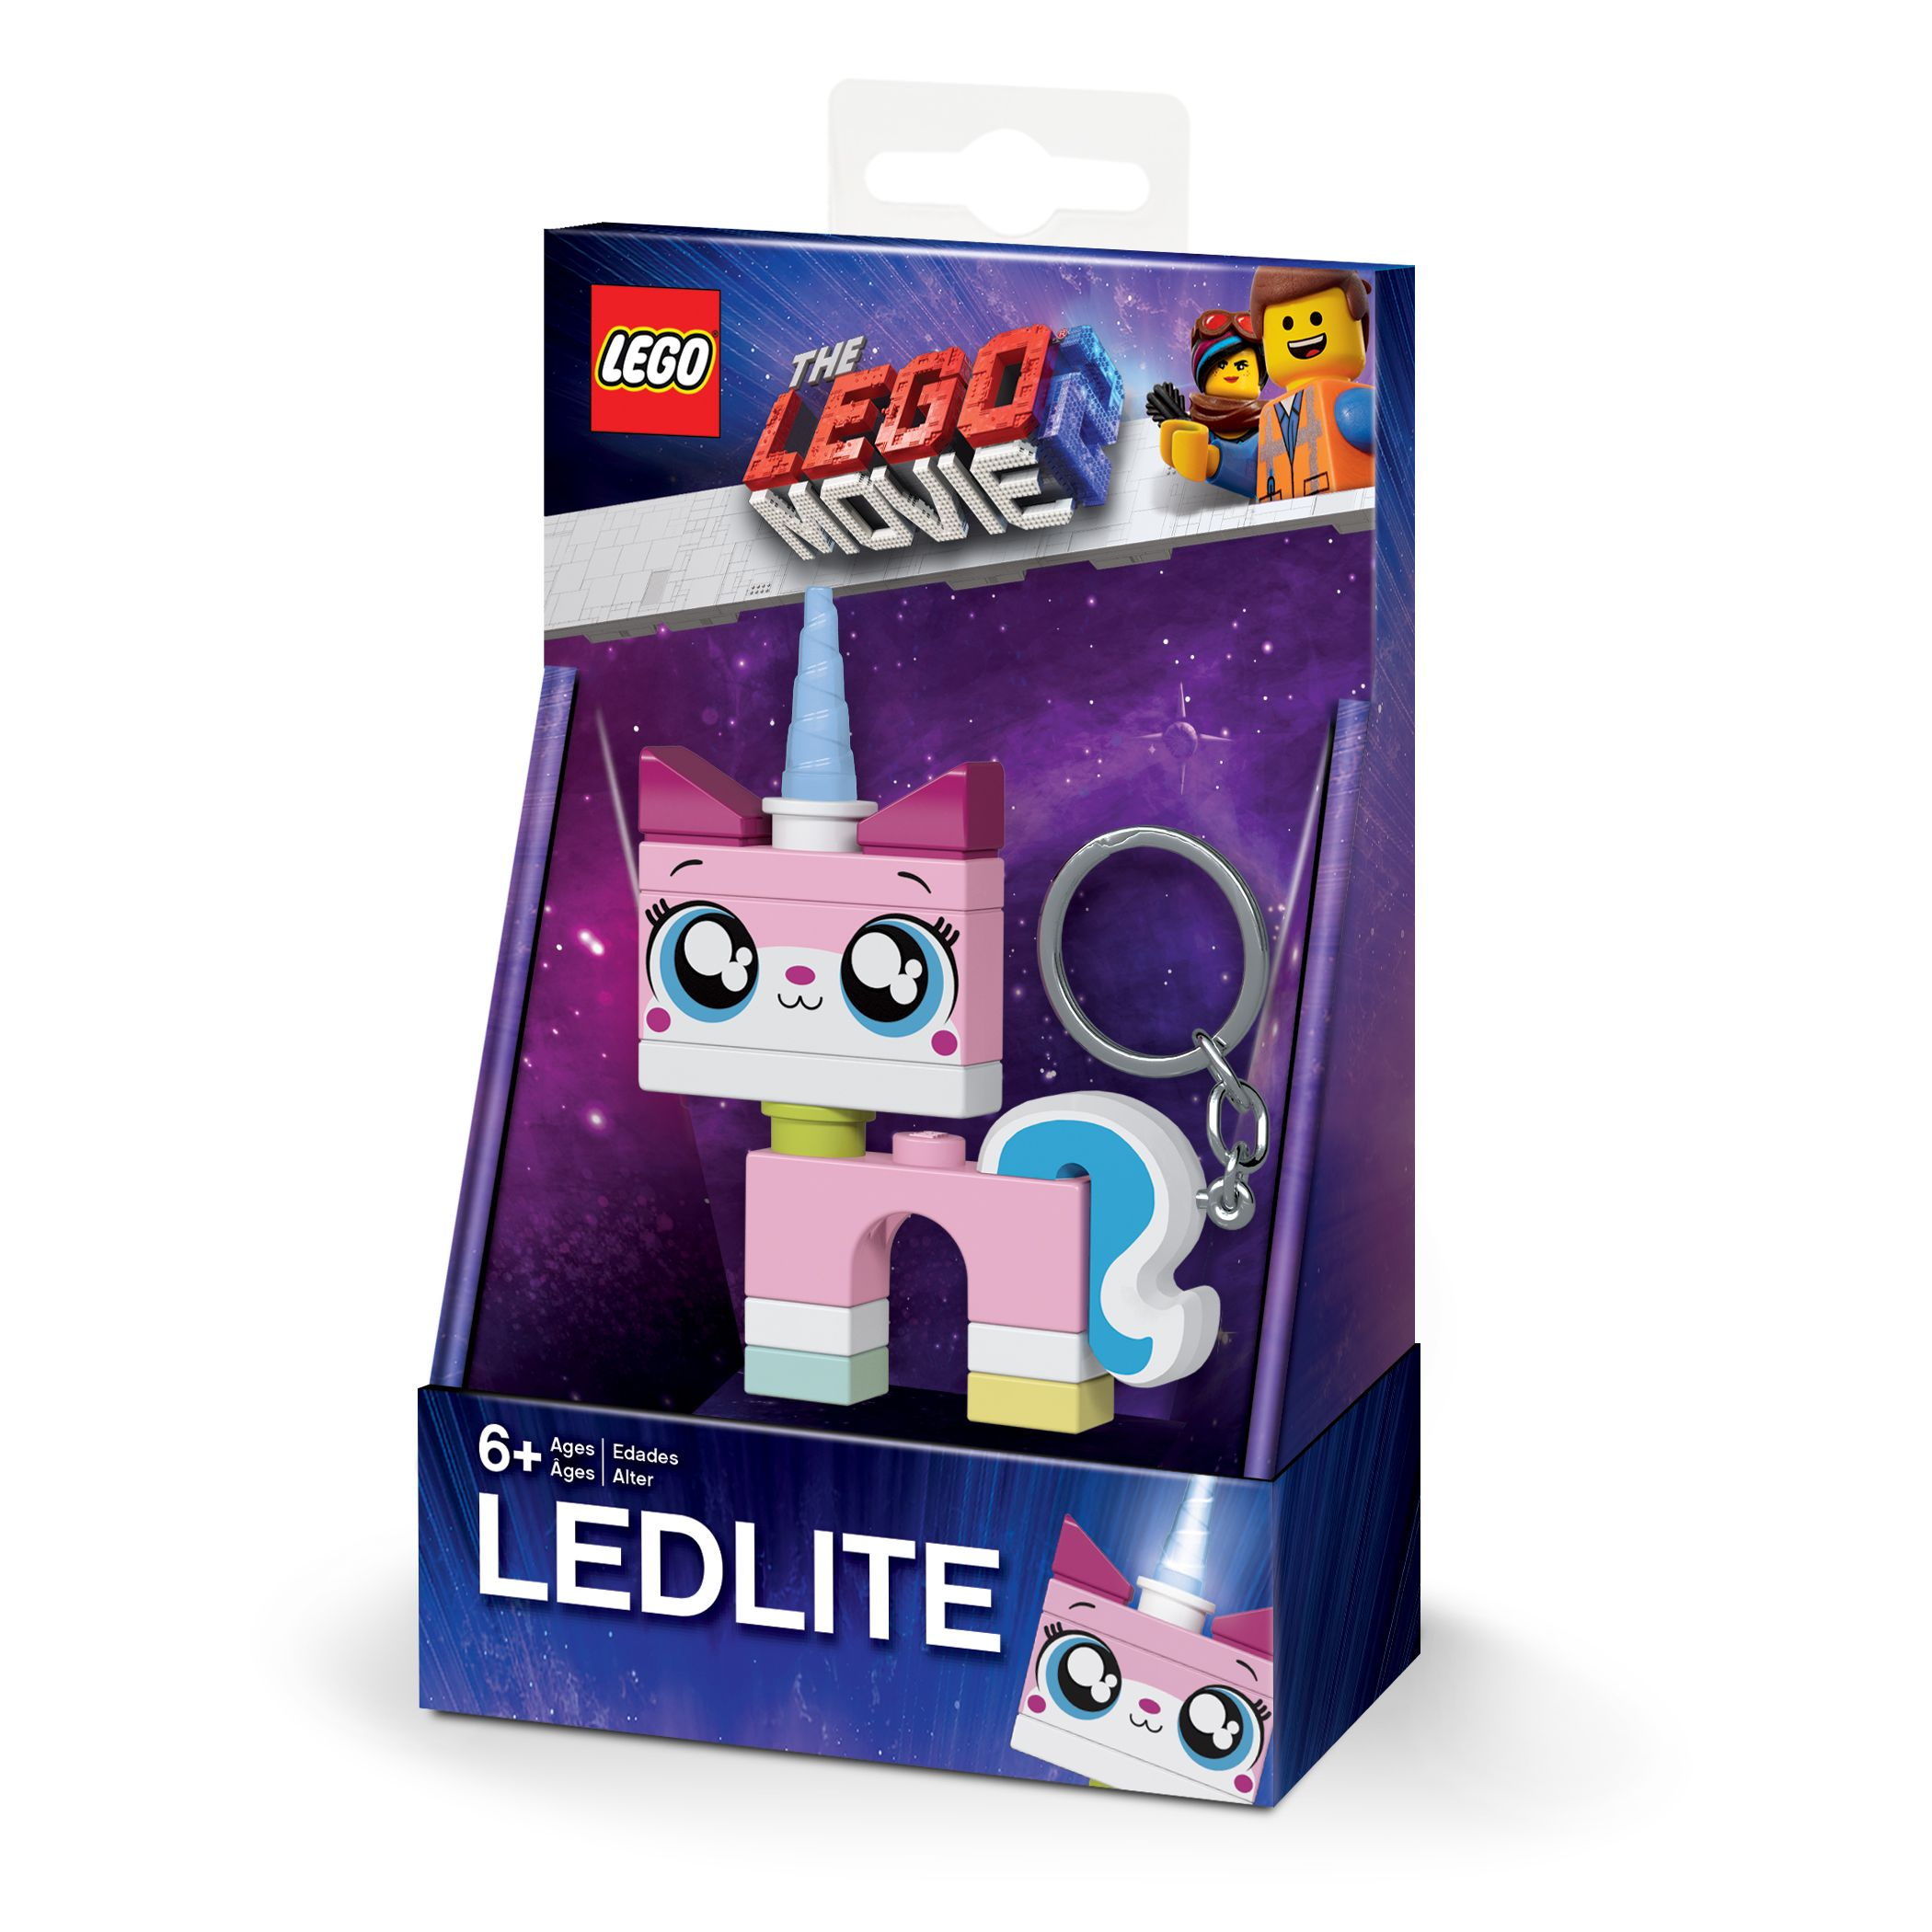 LEGO Gear 5005741 THE LEGO® MOVIE 2™ Einhorn-Kitty-Schlüssellicht LEGO_5005741_alt1.jpg